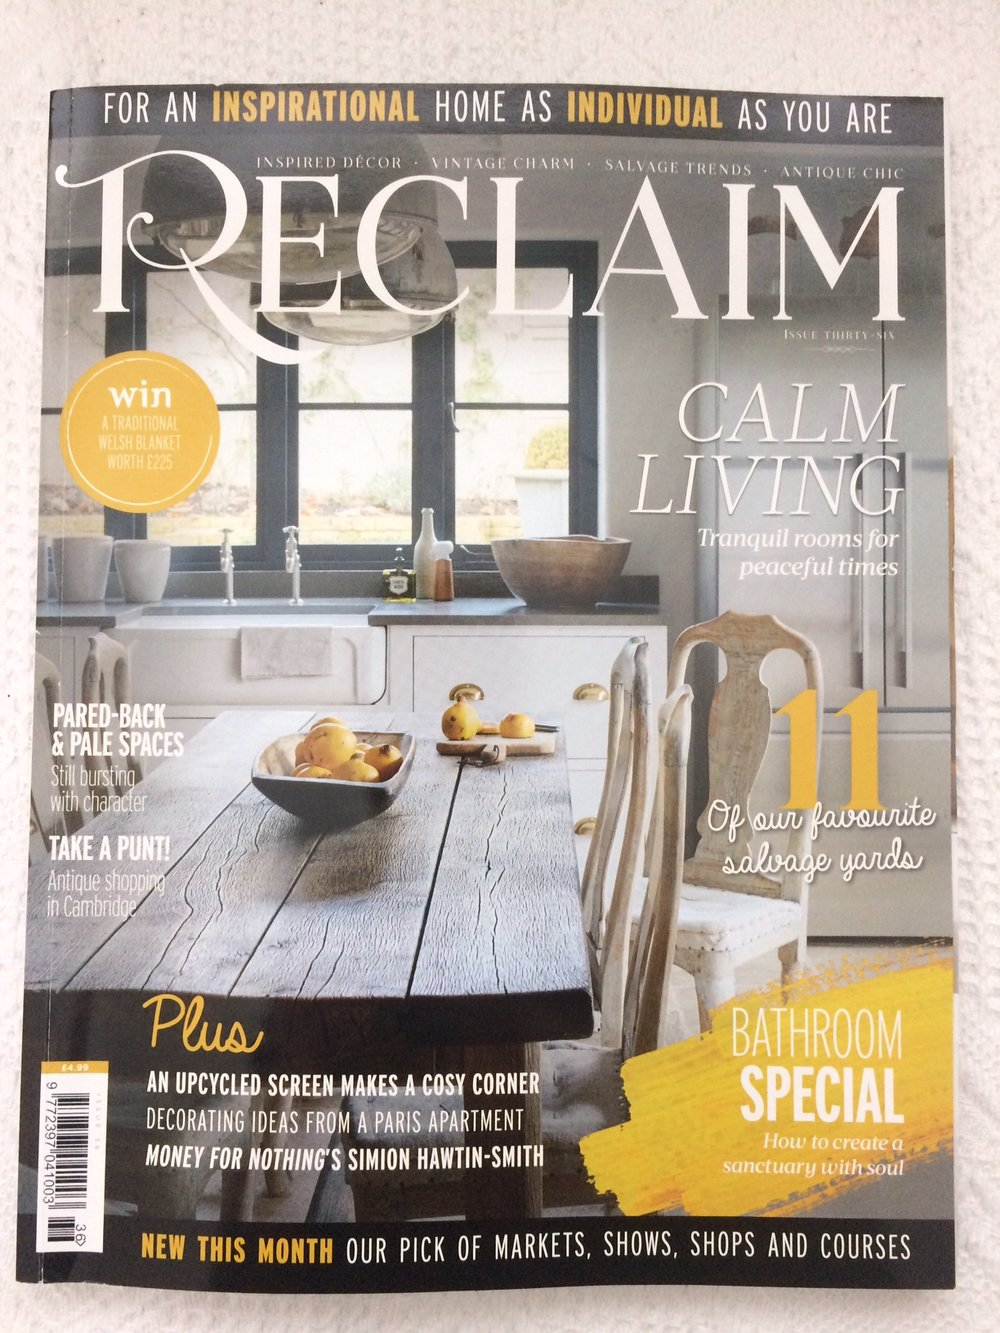 Reclaim-magazine-cover-march-2019.jpg